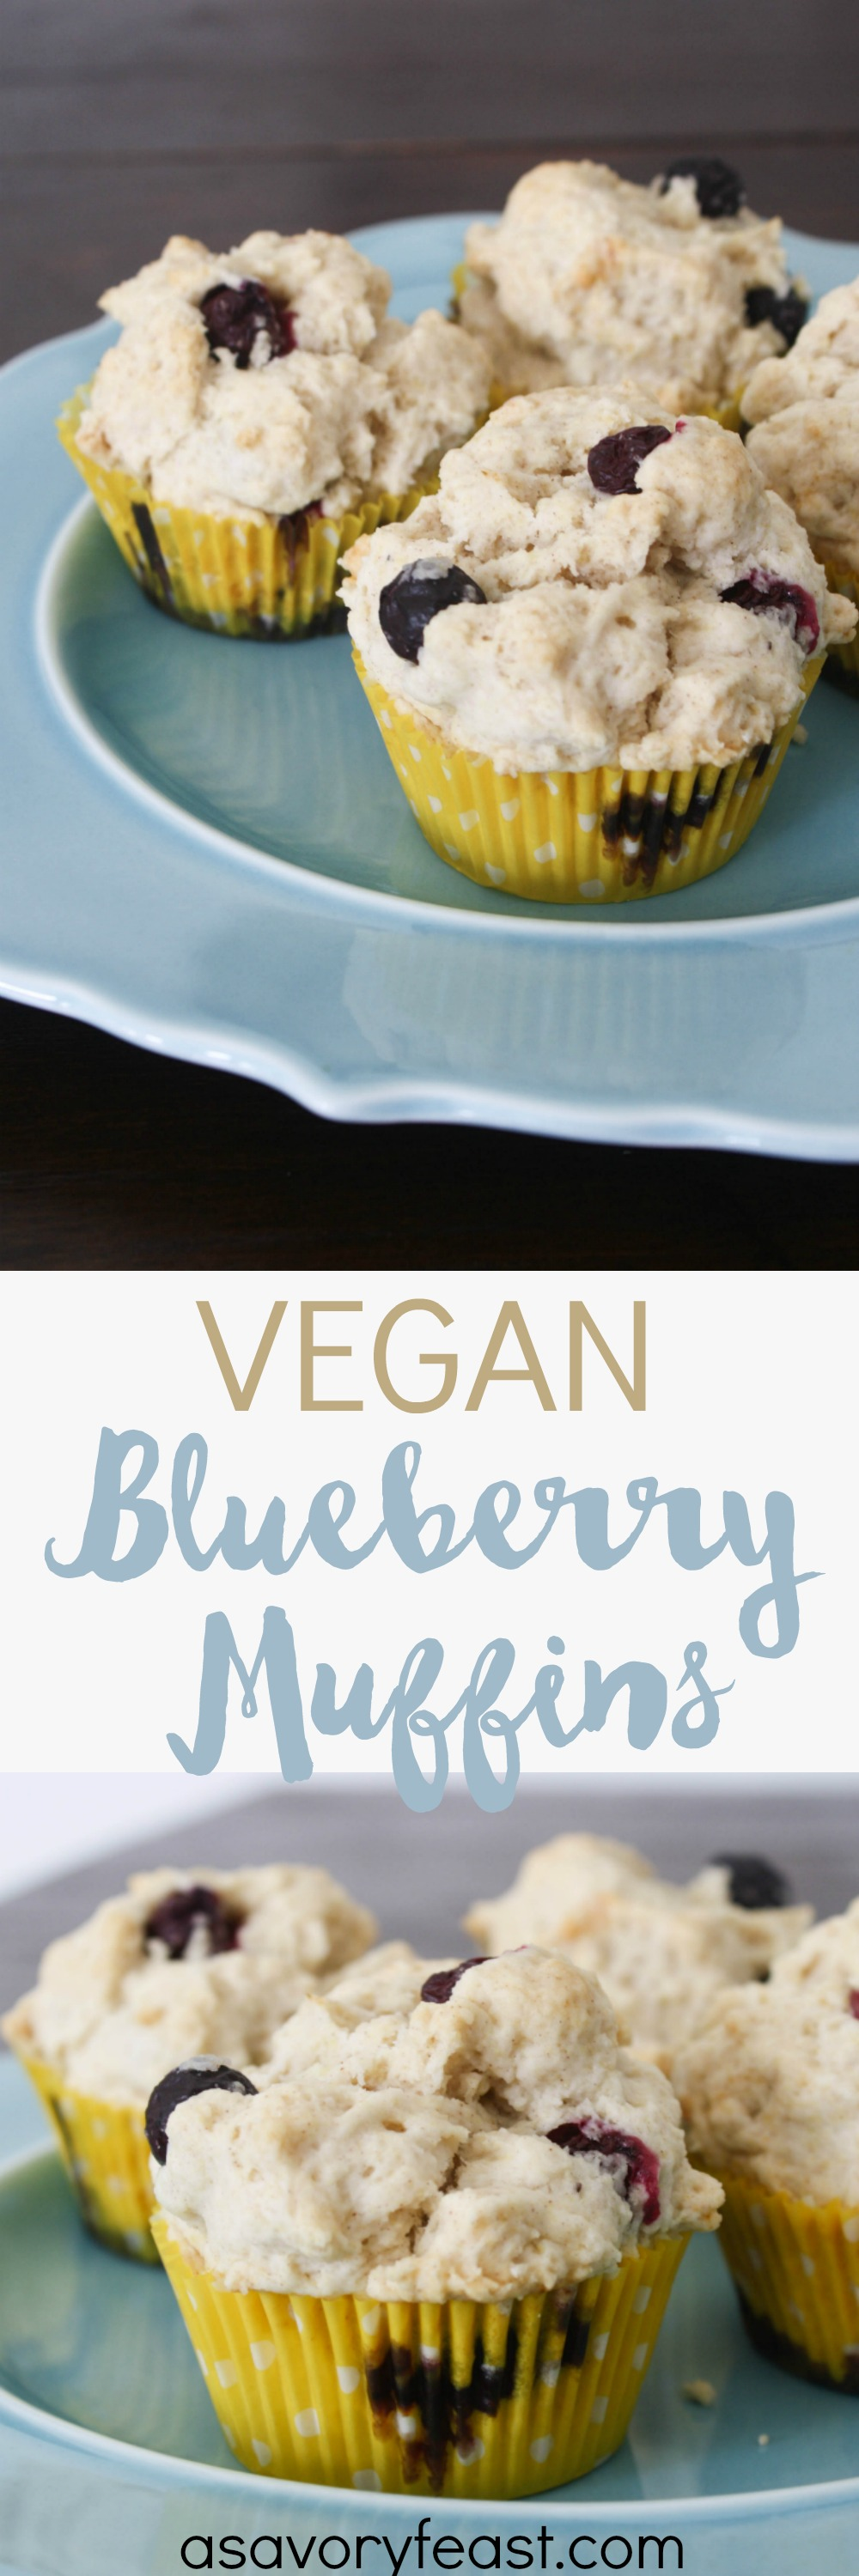 These delicious blueberry muffins are made without eggs or dairy! Whether or not you eat a vegan diet, you will love this easy breakfast idea. A great way to start the day!